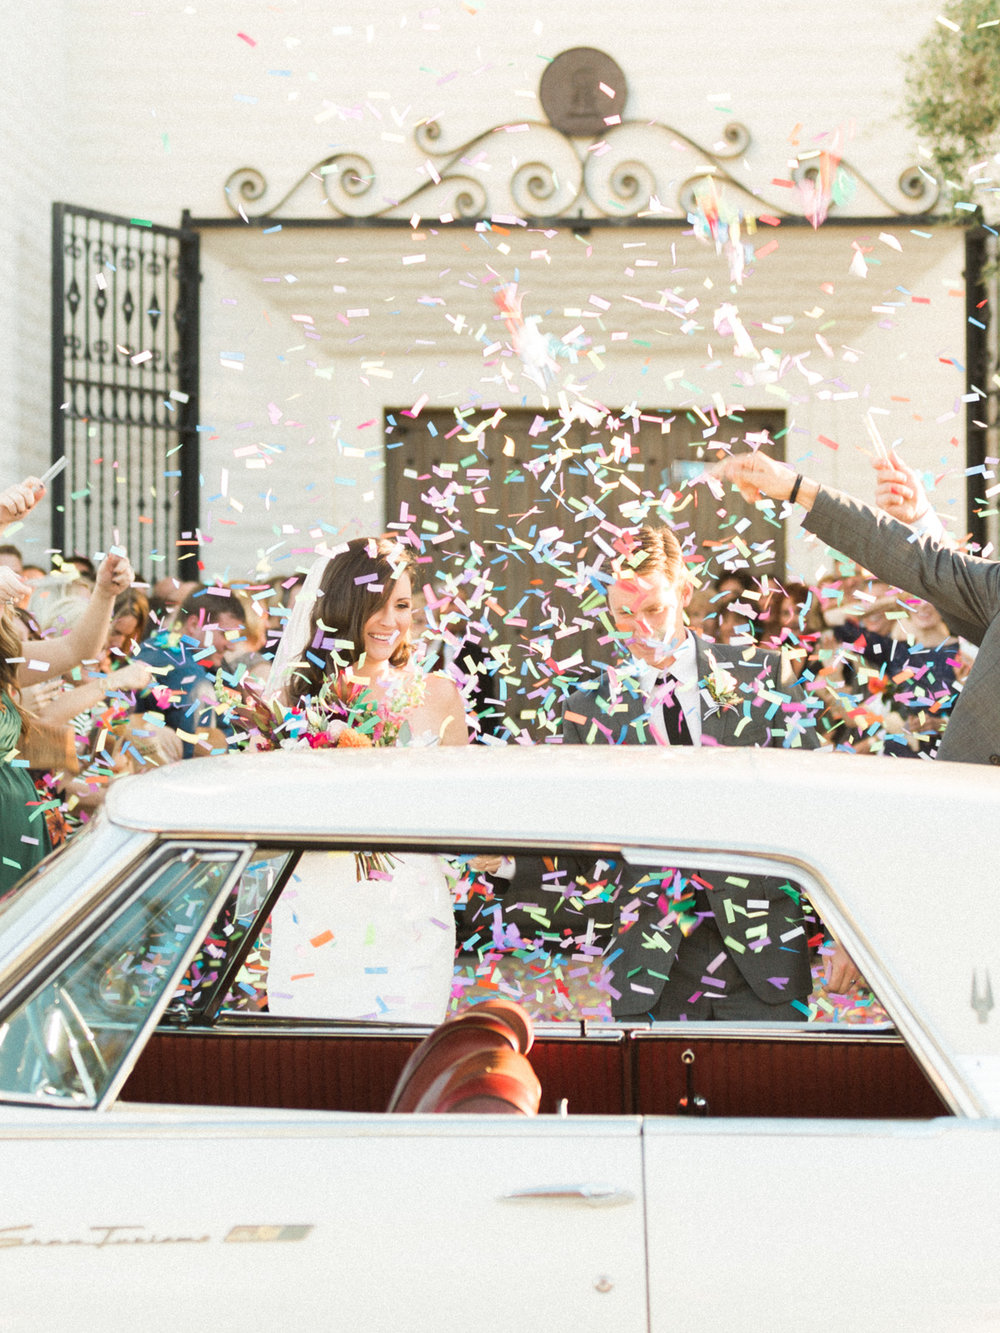 Confetti exit after ceremony, bride and groom getting into getaway car